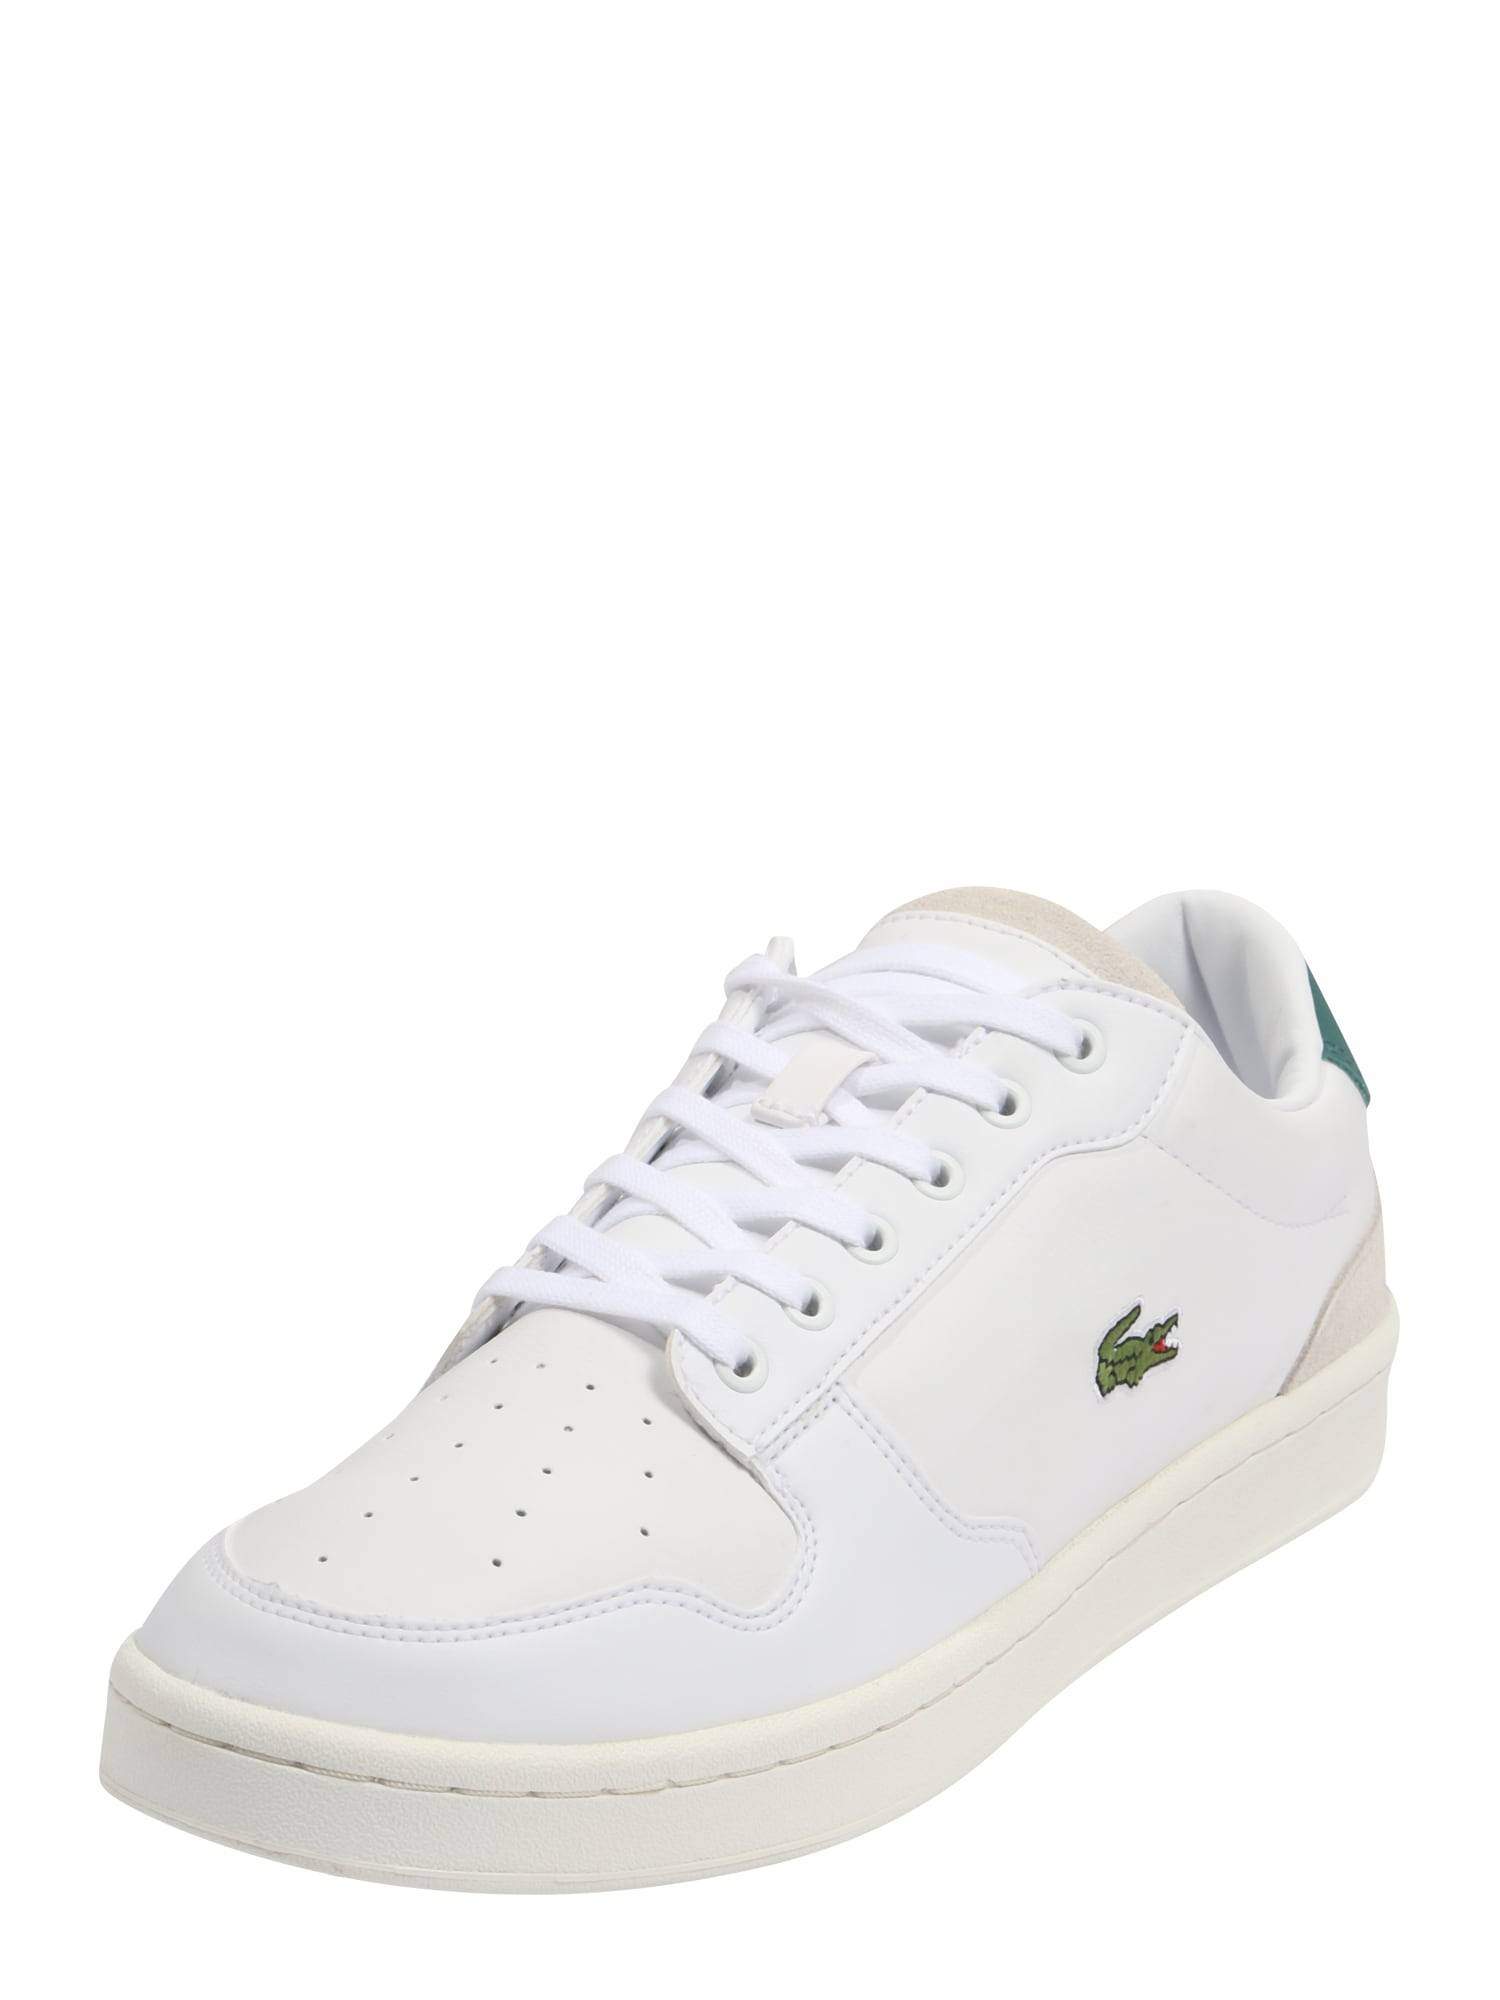 LACOSTE Baskets basses 'MASTERS CUP'  - Blanc - Taille: 47 - male